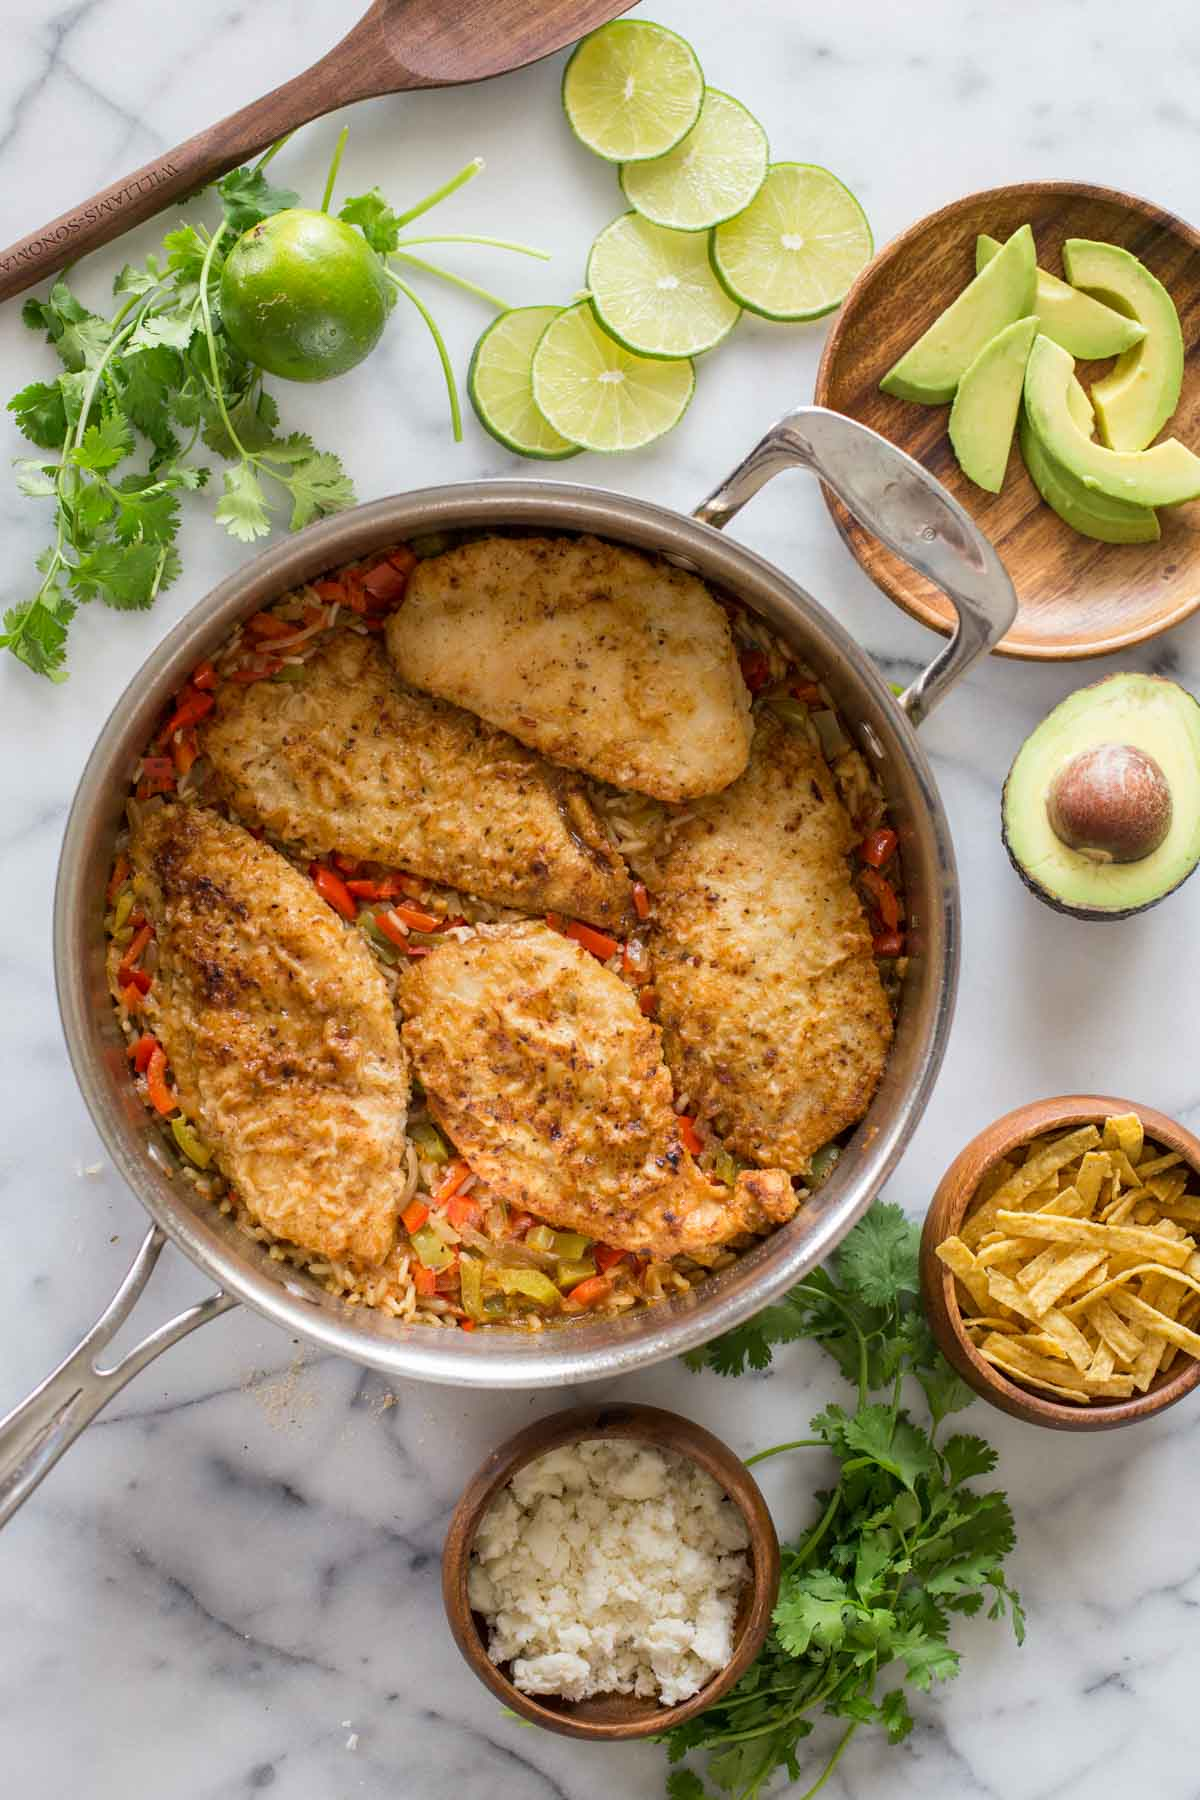 One Skillet Fajita Style Chicken and Rice, with a little bowl of crumbled queso fresco, fresh cilantro, a small bowl of tortilla strips, a half of an avocado, a plate of sliced avocado, some slices of lime, and a whole lime next to the skillet.